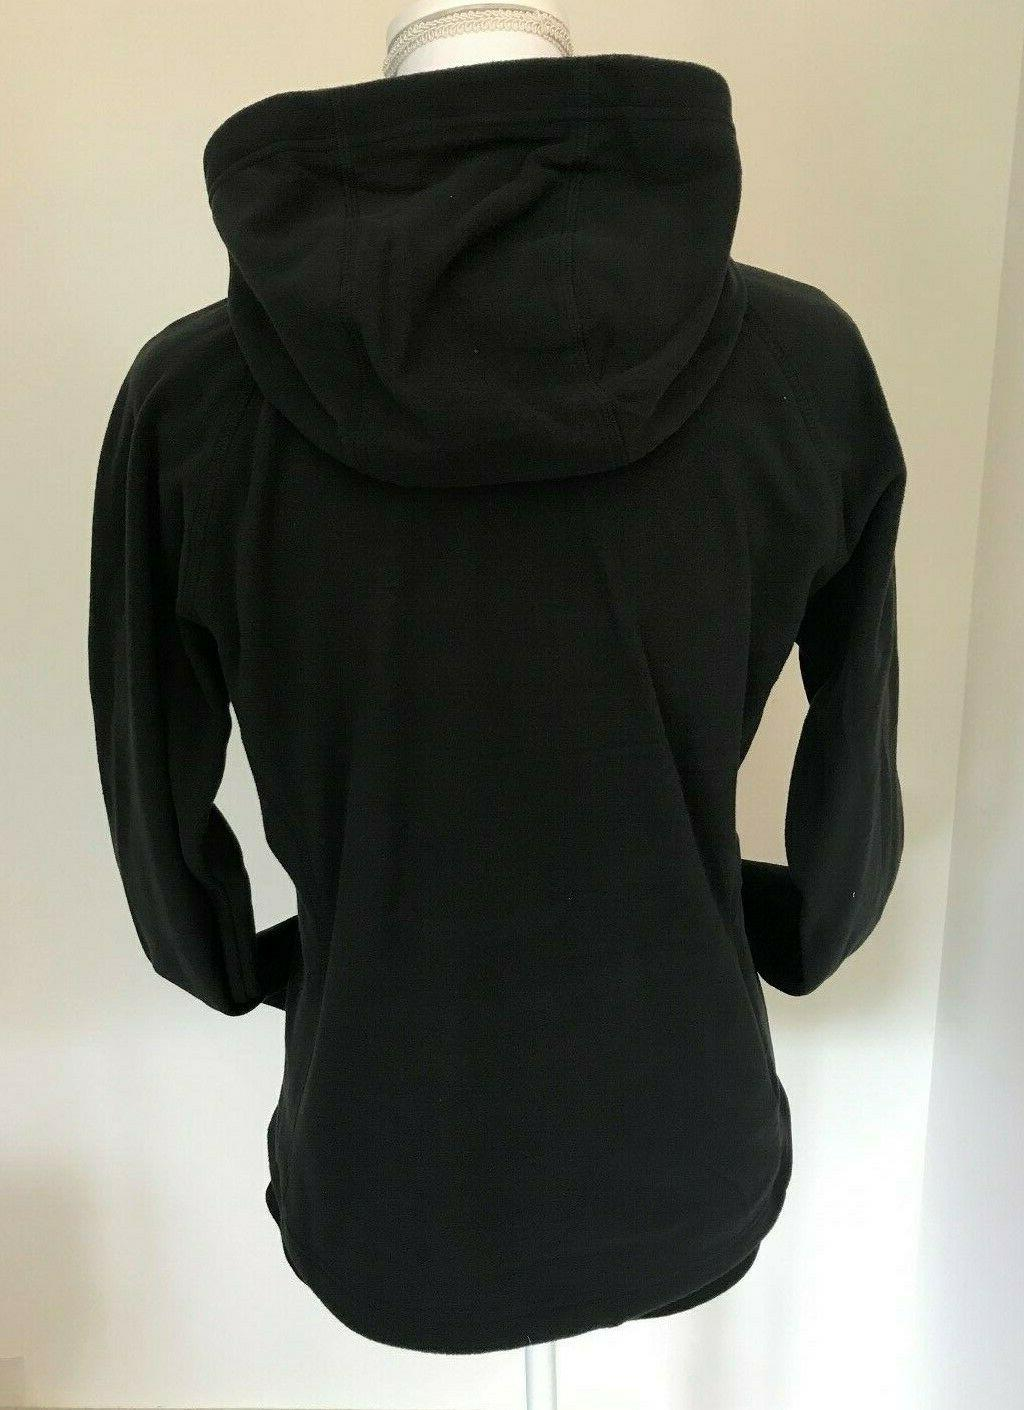 THE FACE 100 Tundra Hoodie Jacket TNF S M